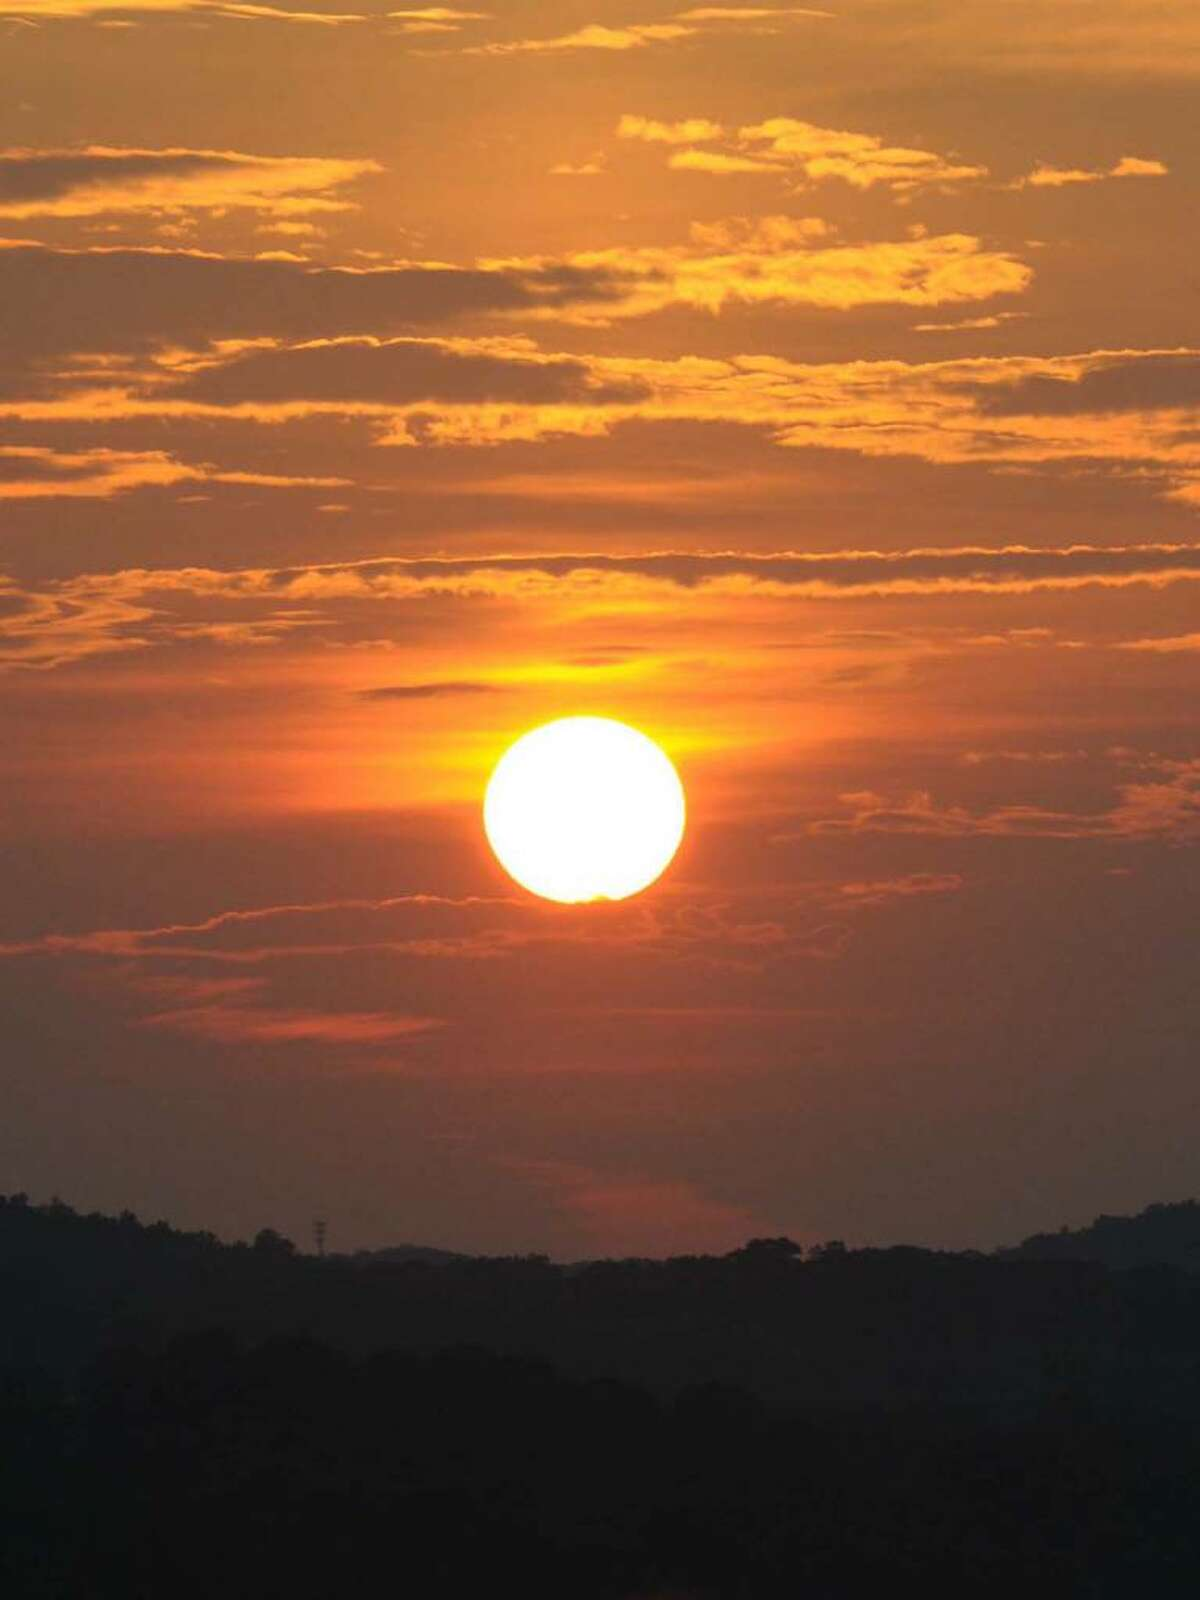 The sun sets over the mountains behind the Danbury Mall after a hazy, hot summer Wednesday, Aug. 19, 2009.